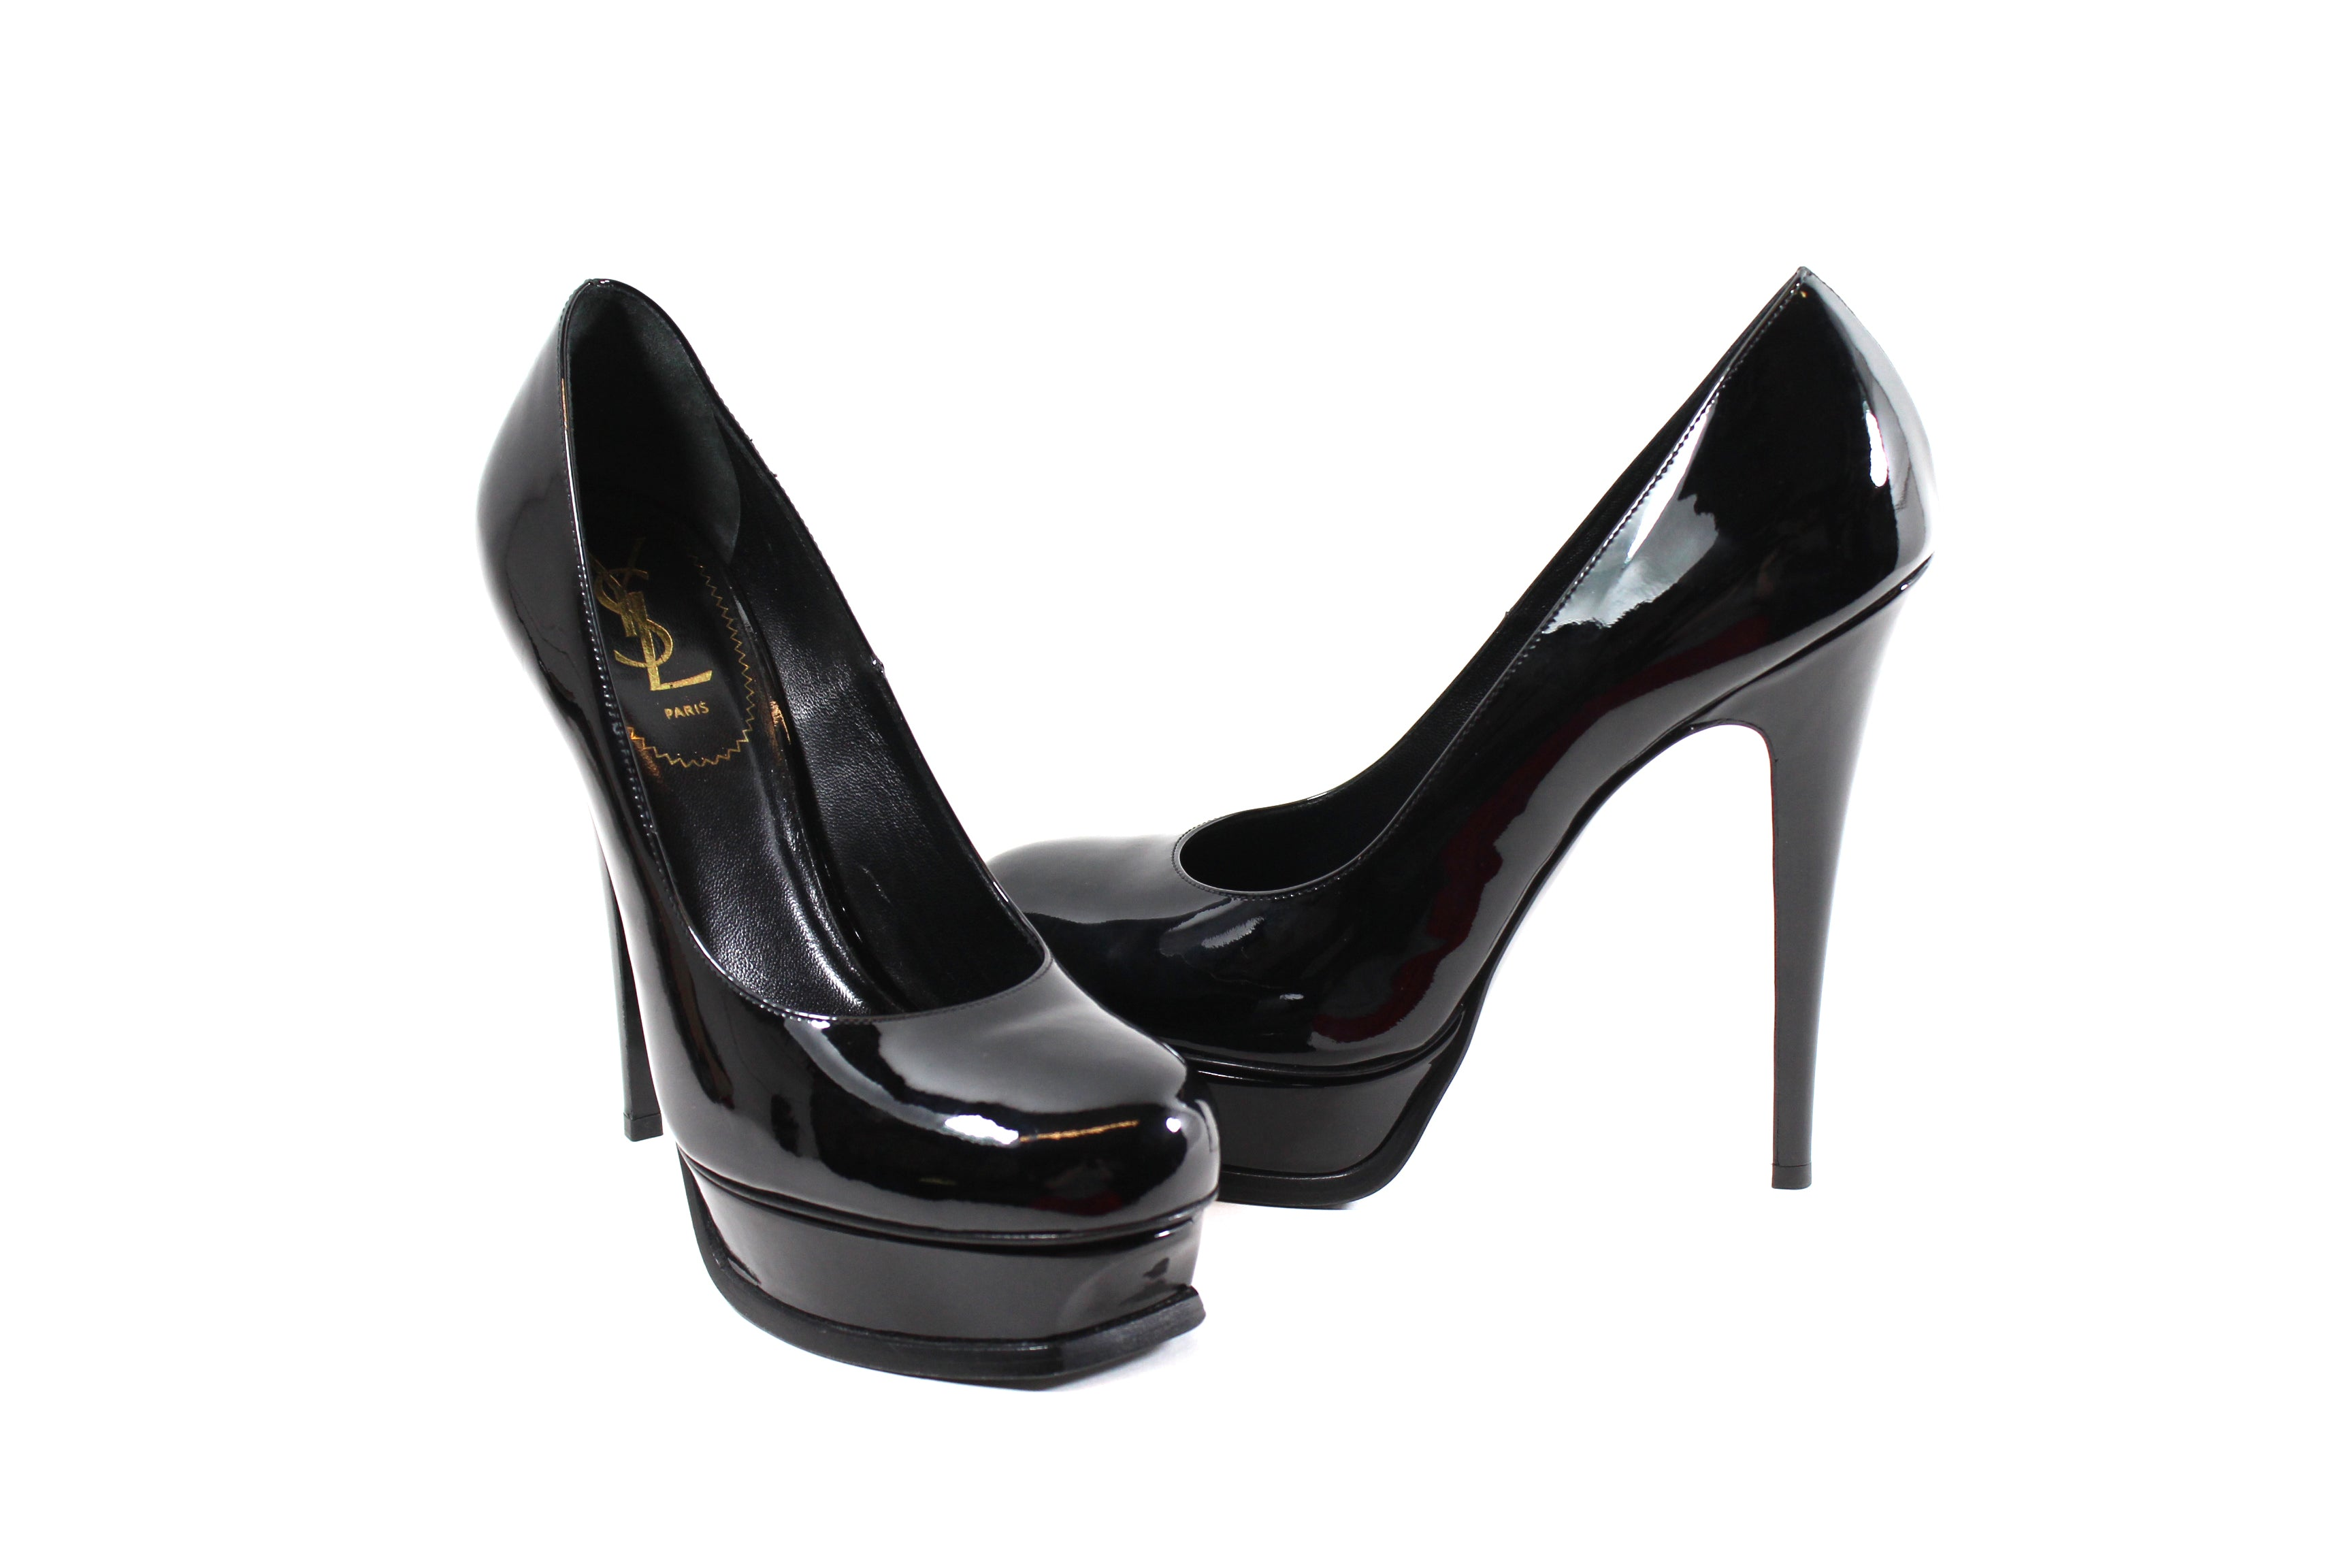 78291ef93eb1 Yves Saint Laurent  Tribute  Black Patent Leather Platform Heels (Size ...